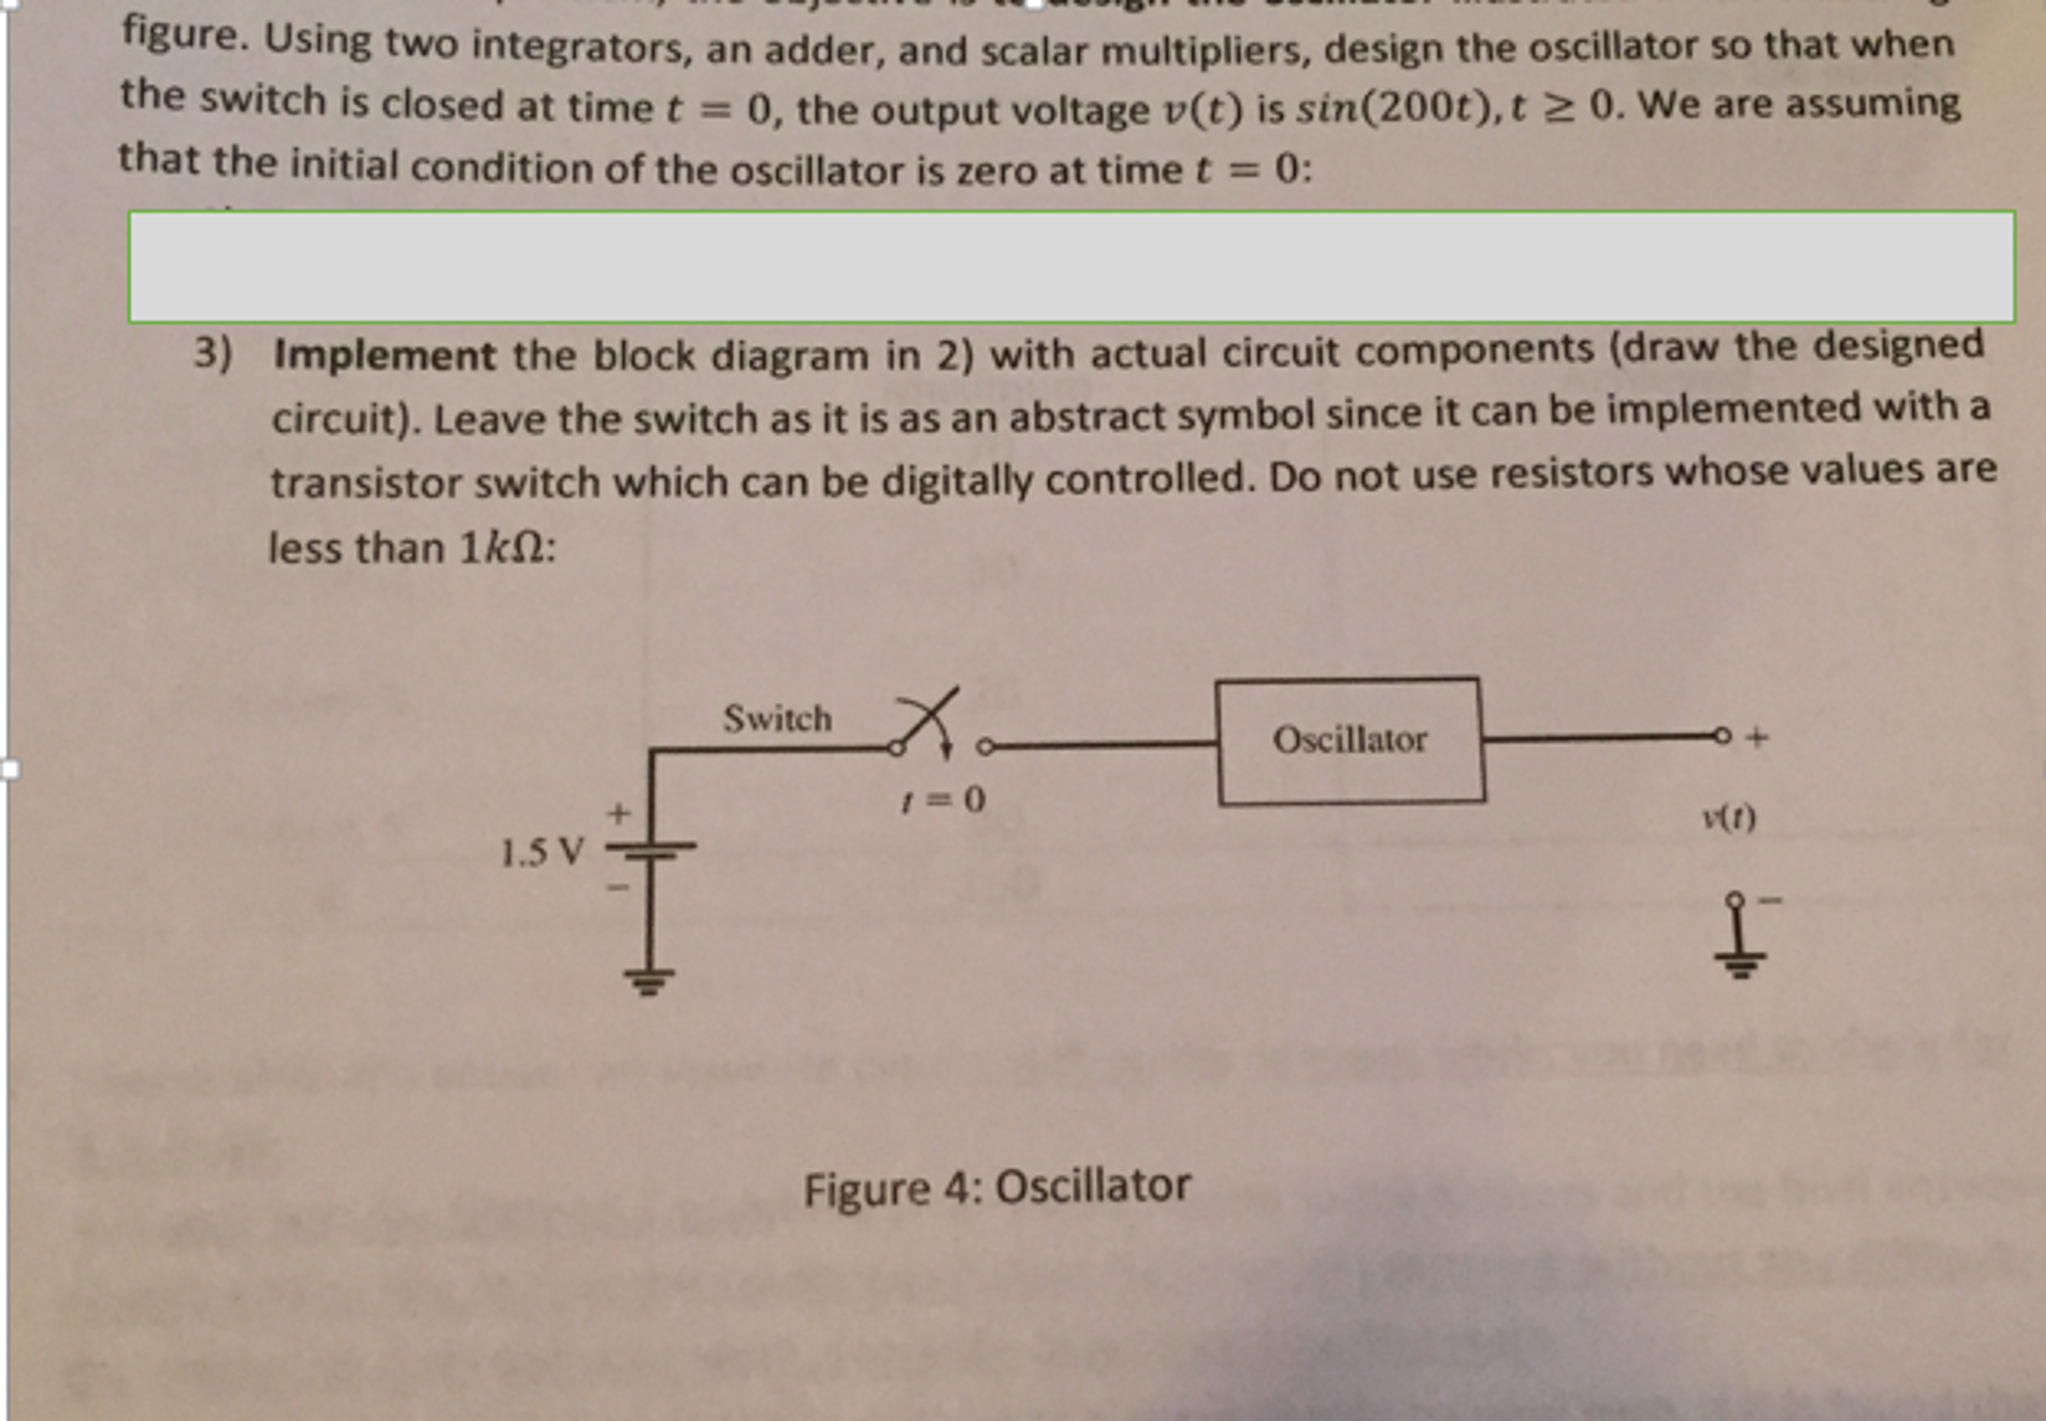 Implement the block diagram in 2) with actual circ